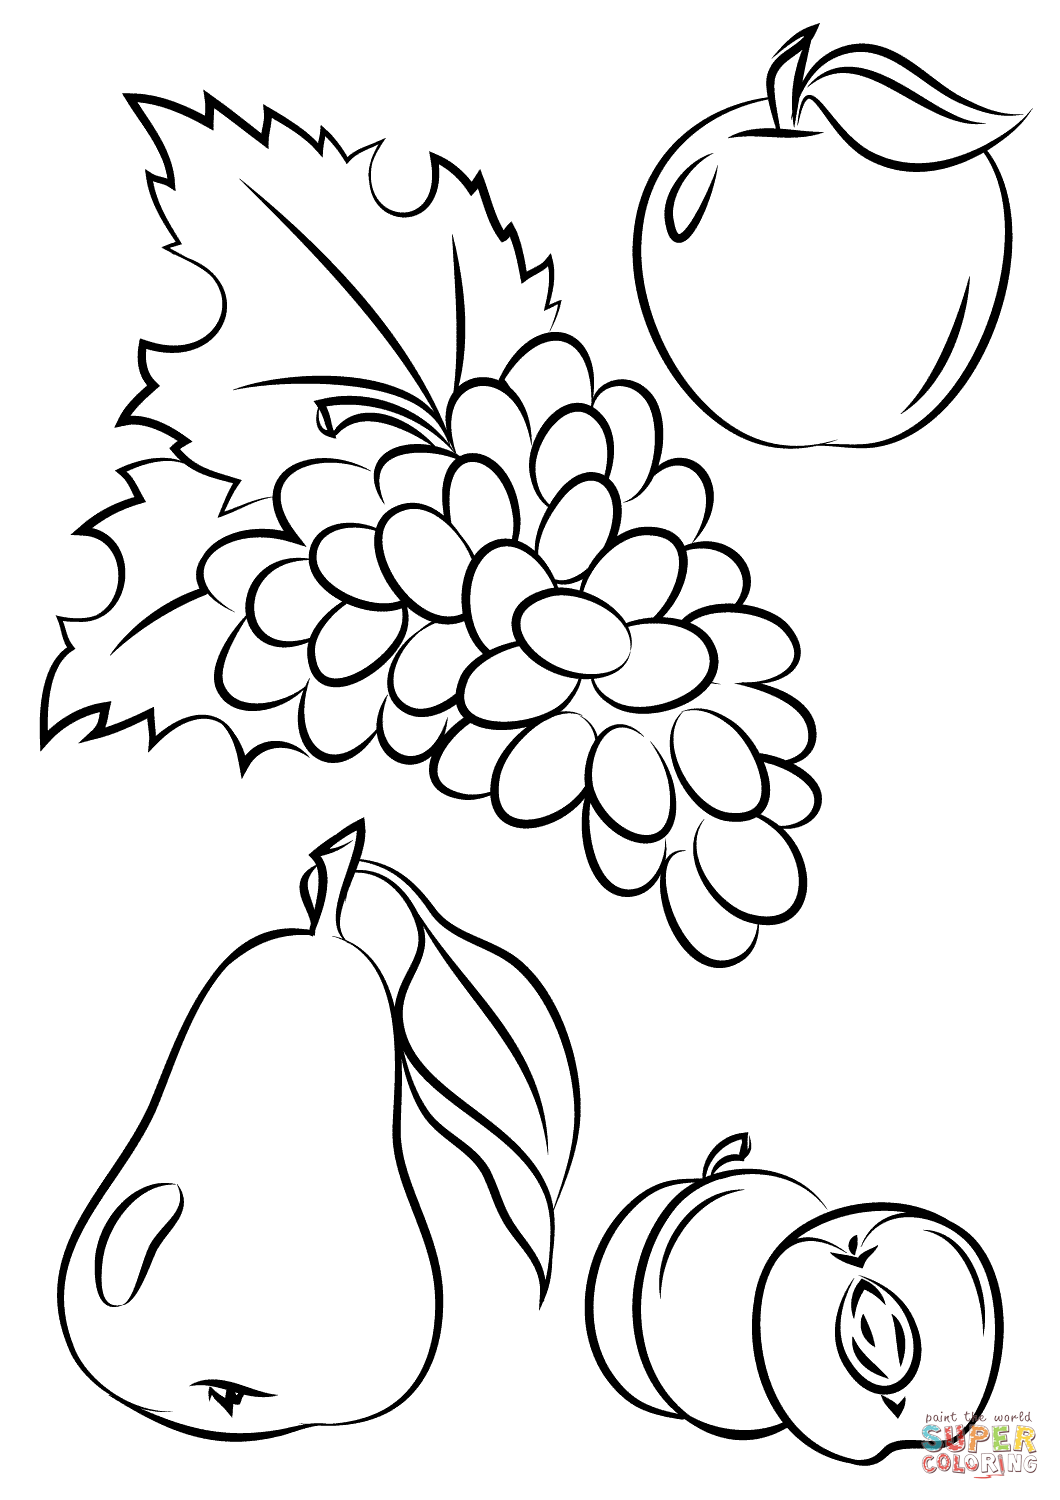 1060x1500 Autumn Fruits Coloring Page Free Printable Pages